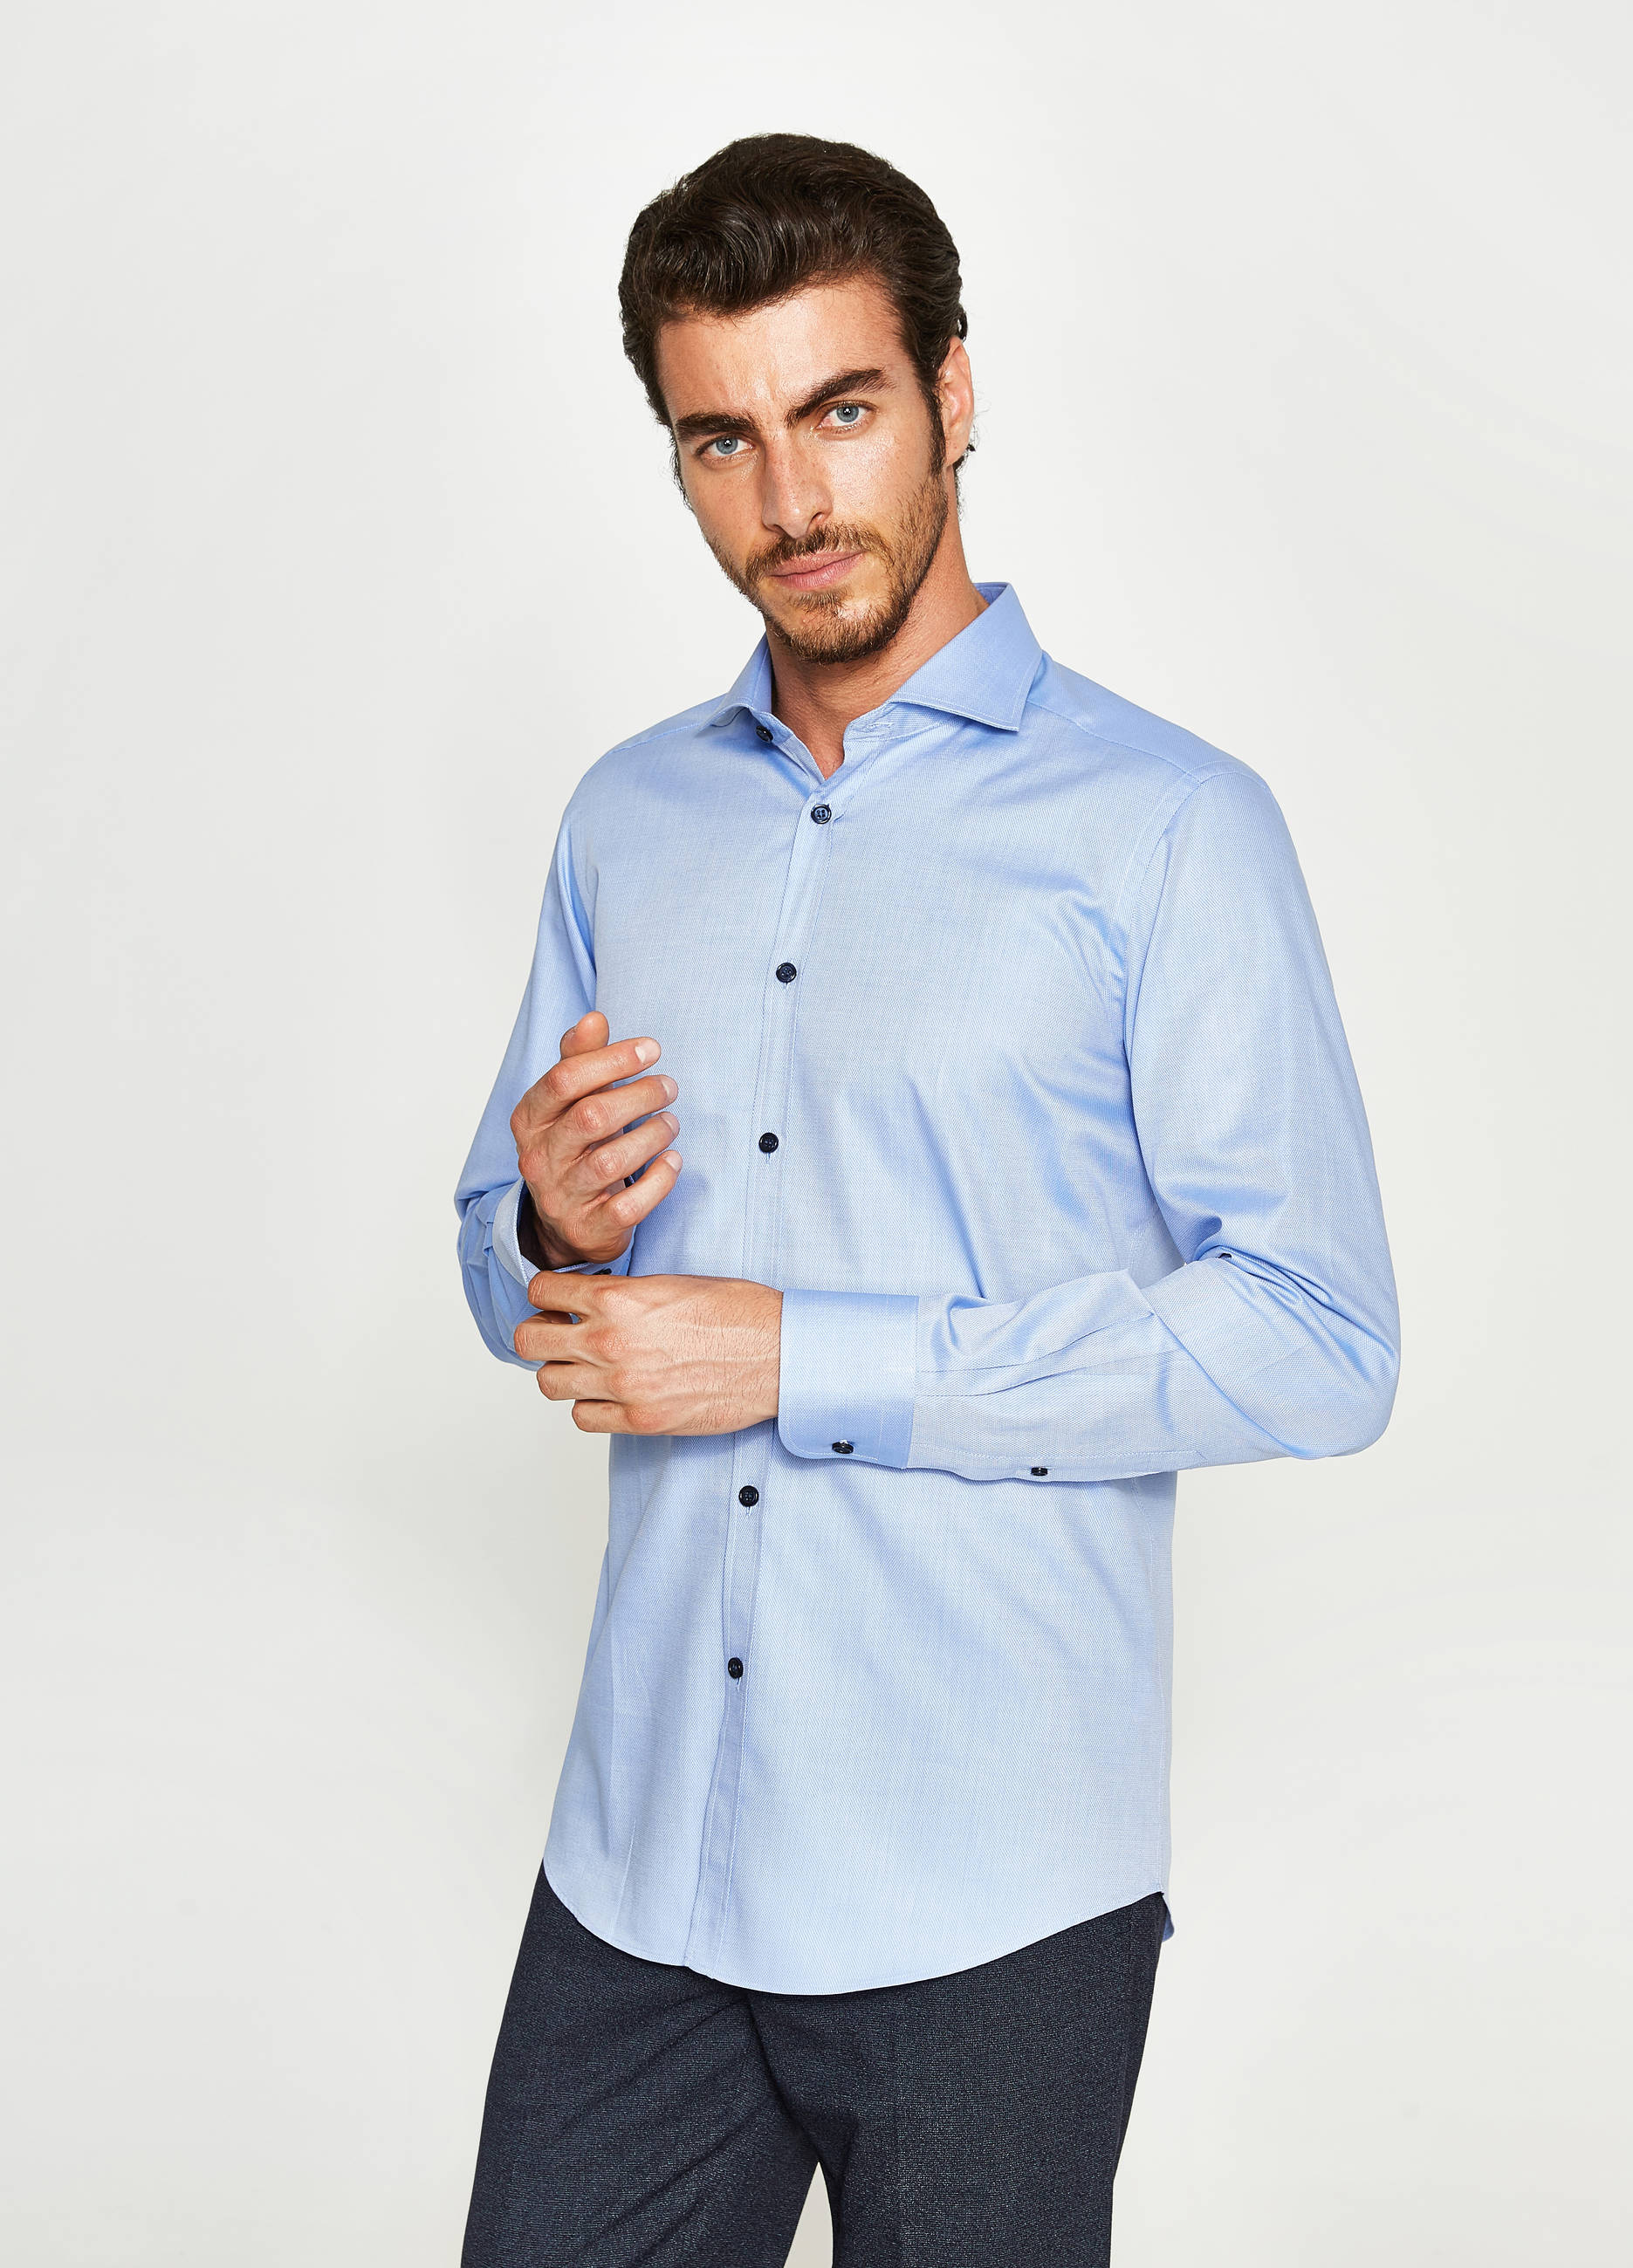 outlet b4351 c2252 Camicia formale slim fit colletto francese